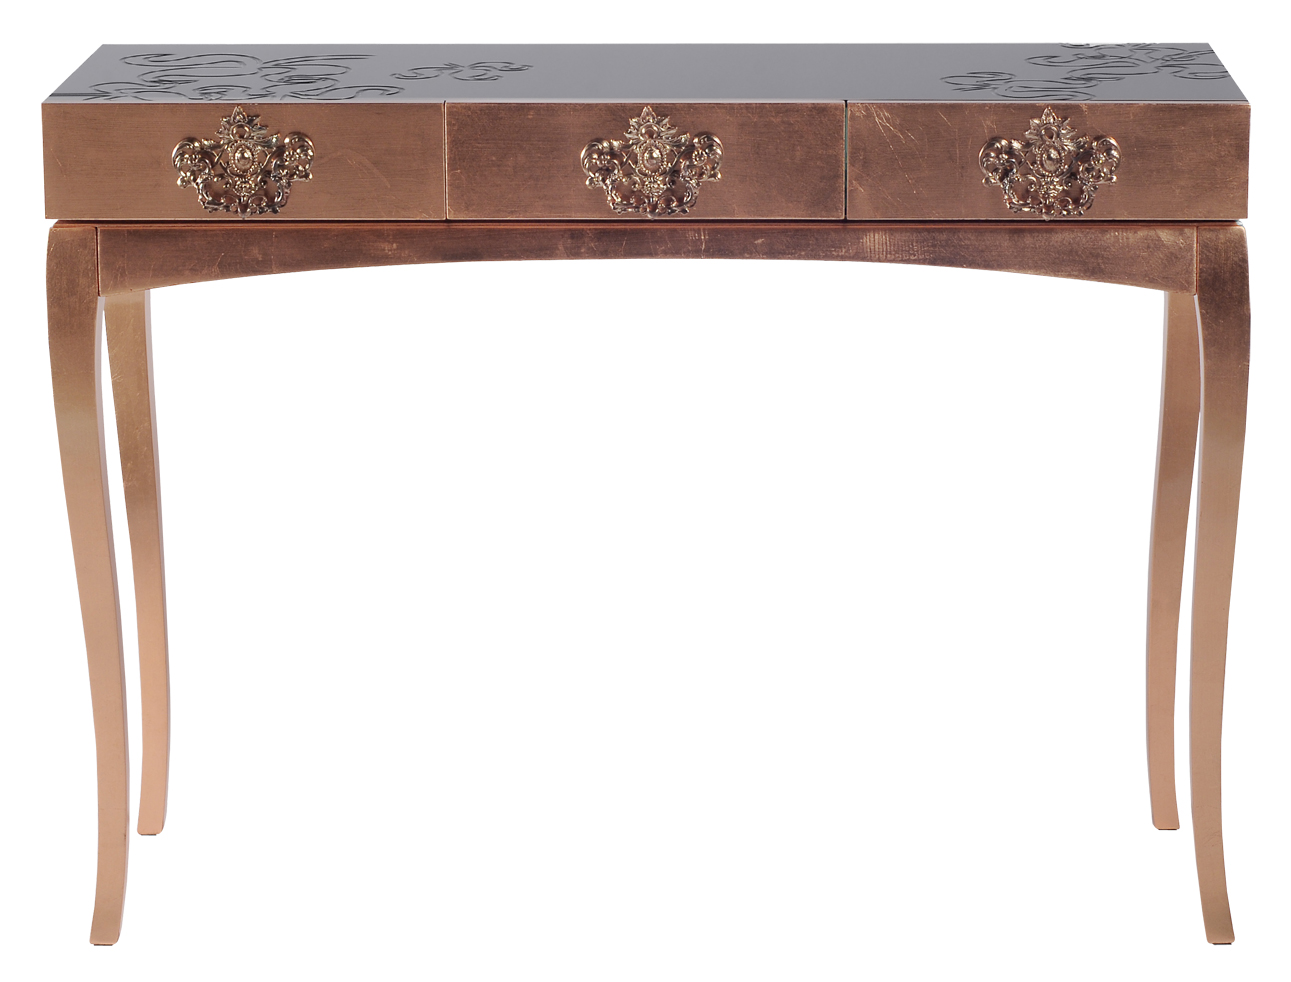 console tables Amazing Console Tables With Detailed Design 1 Amazing Console Tables With Detailed Design